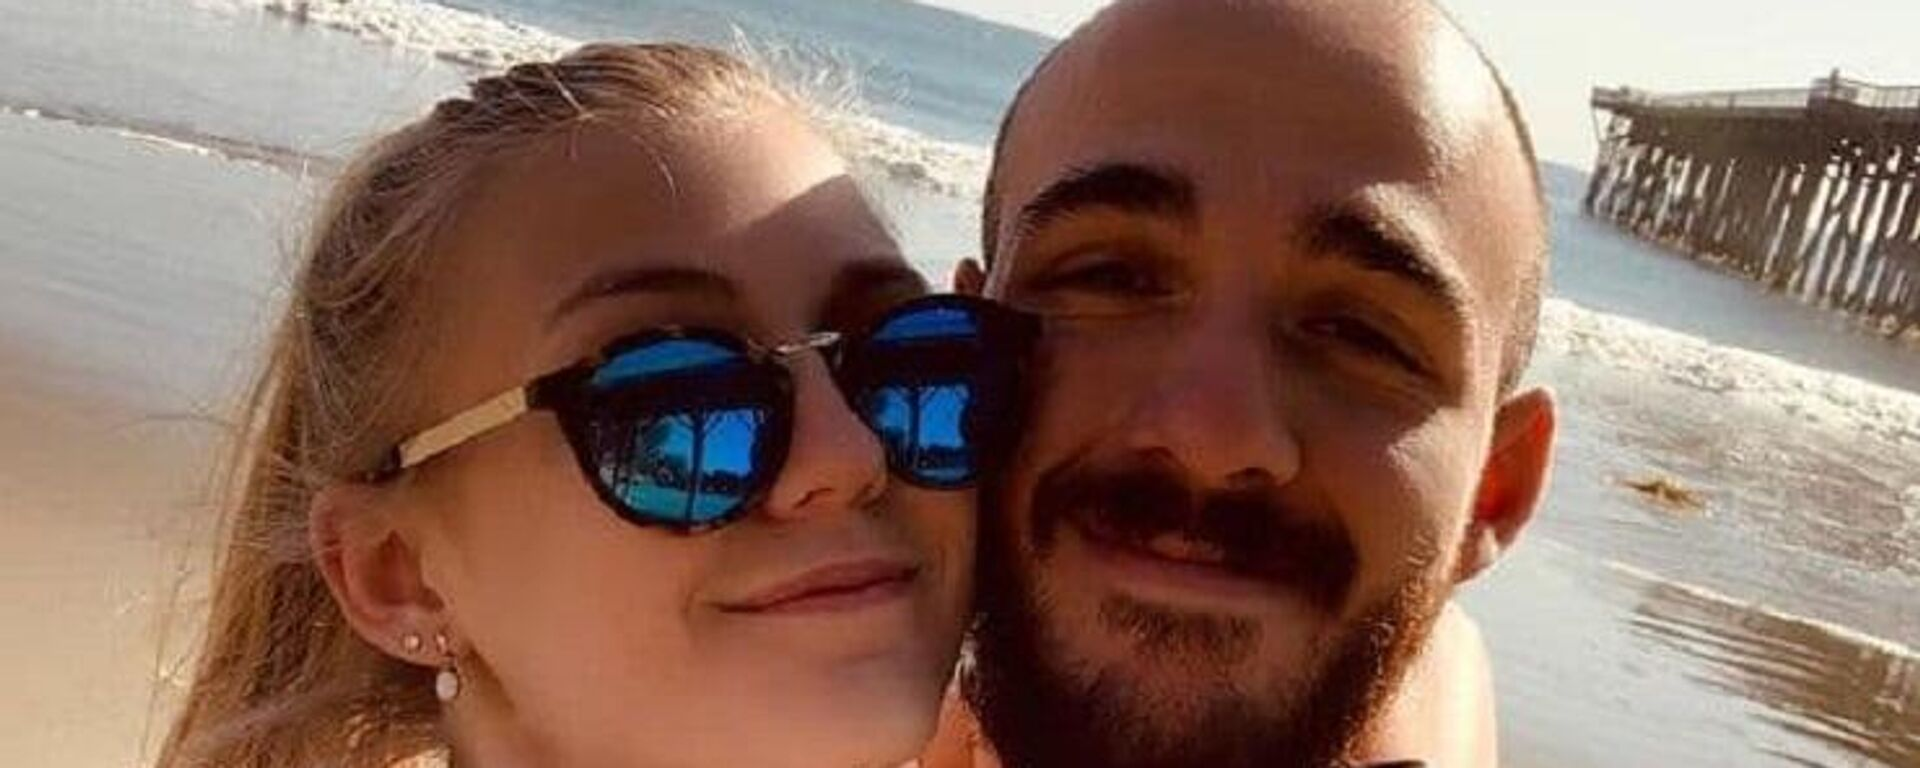 An Instagram photo of missing woman Gabrielle Petito and her boyfriend Brian Laundrie on March 18, 2020 - Sputnik International, 1920, 22.09.2021